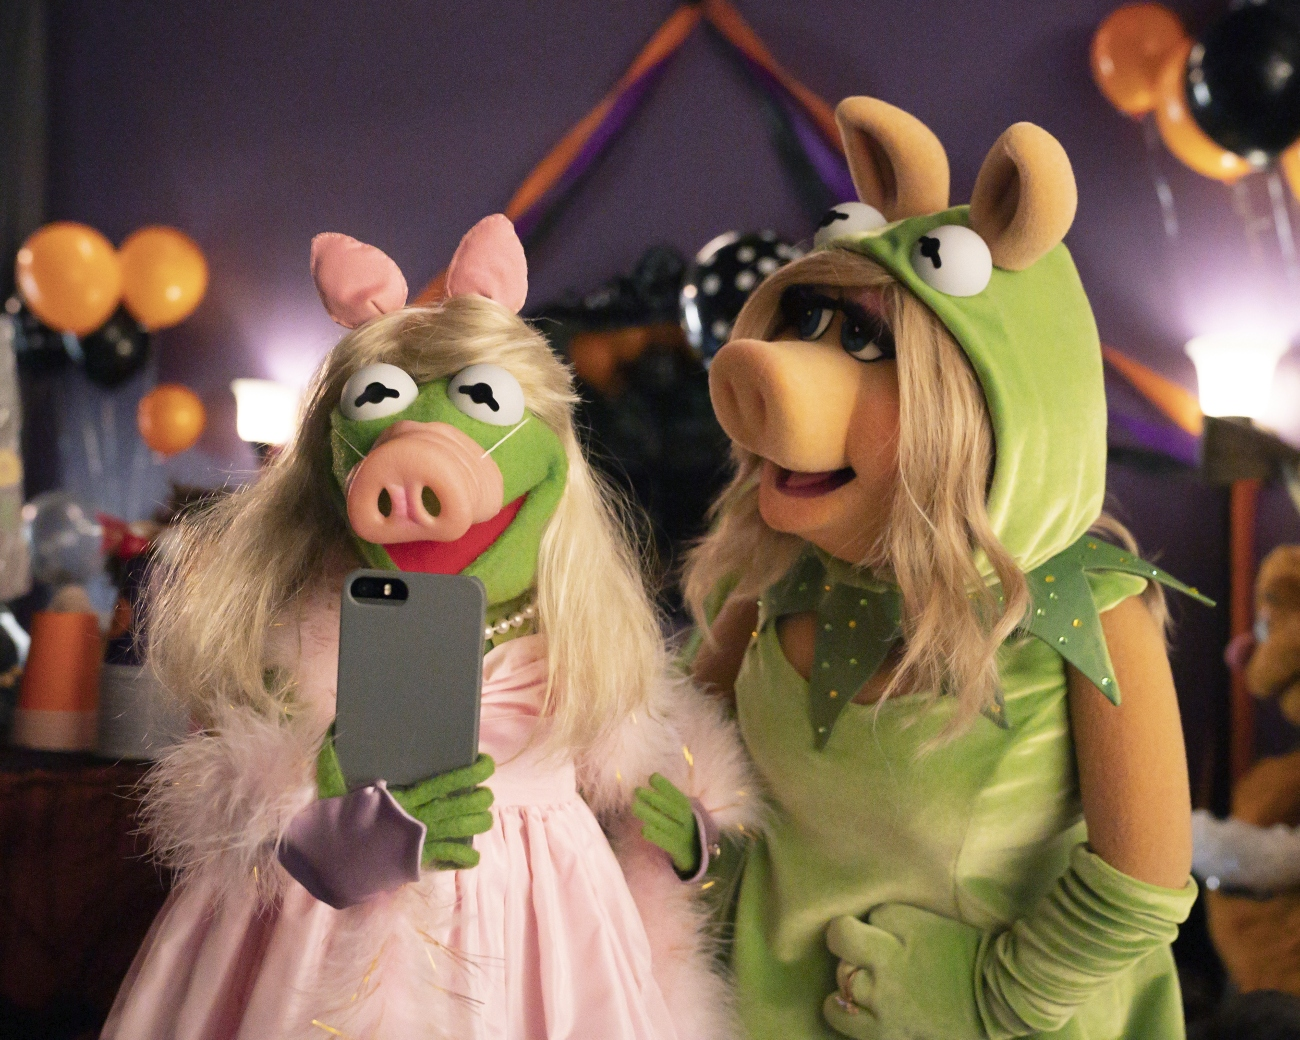 Kermit the Frog and Miss Piggy in